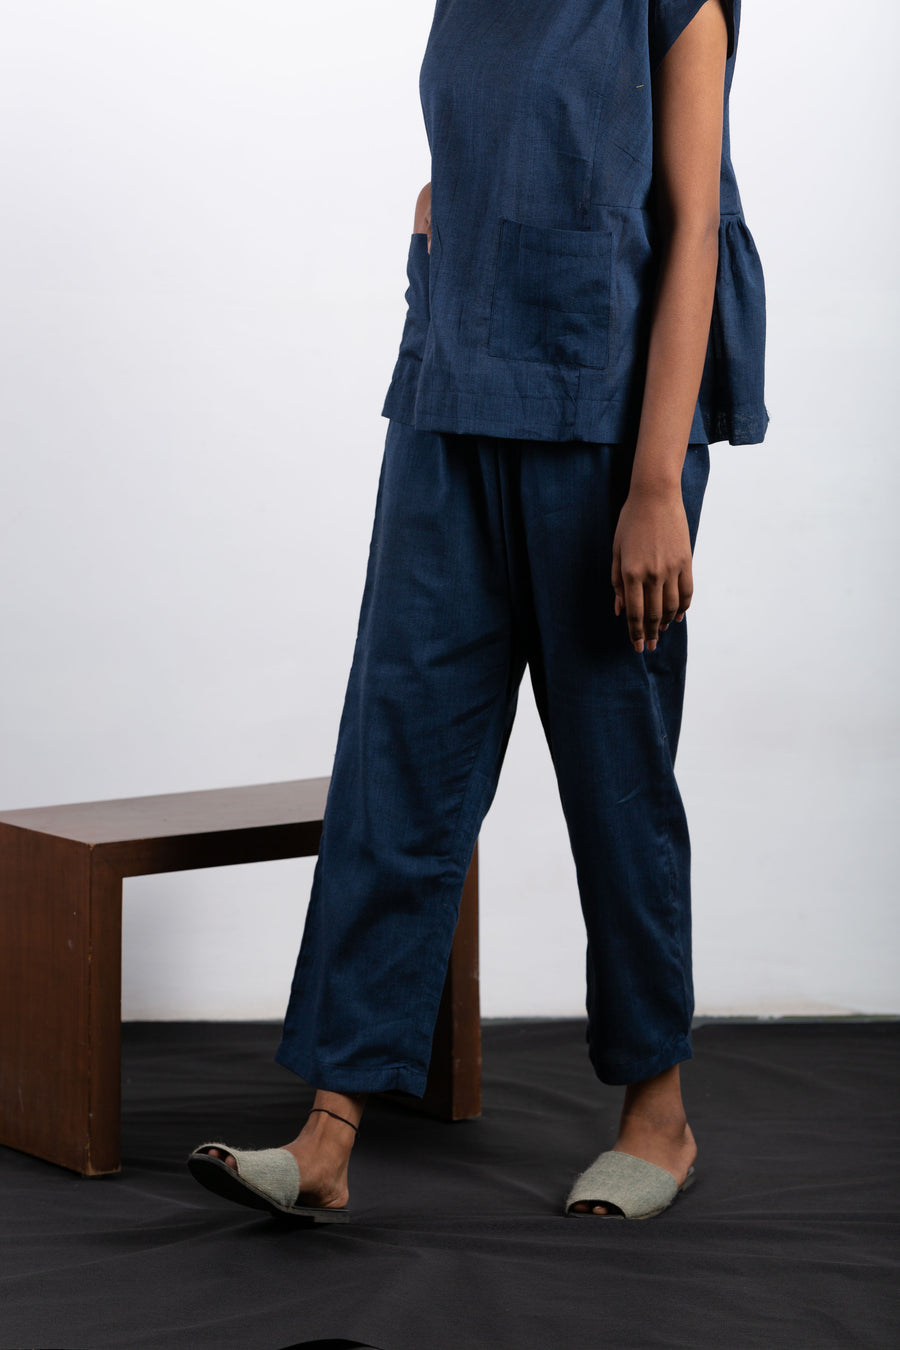 Midnight blue pyjama set in Organic Cotton - Ethical made fashion - onlyethikal